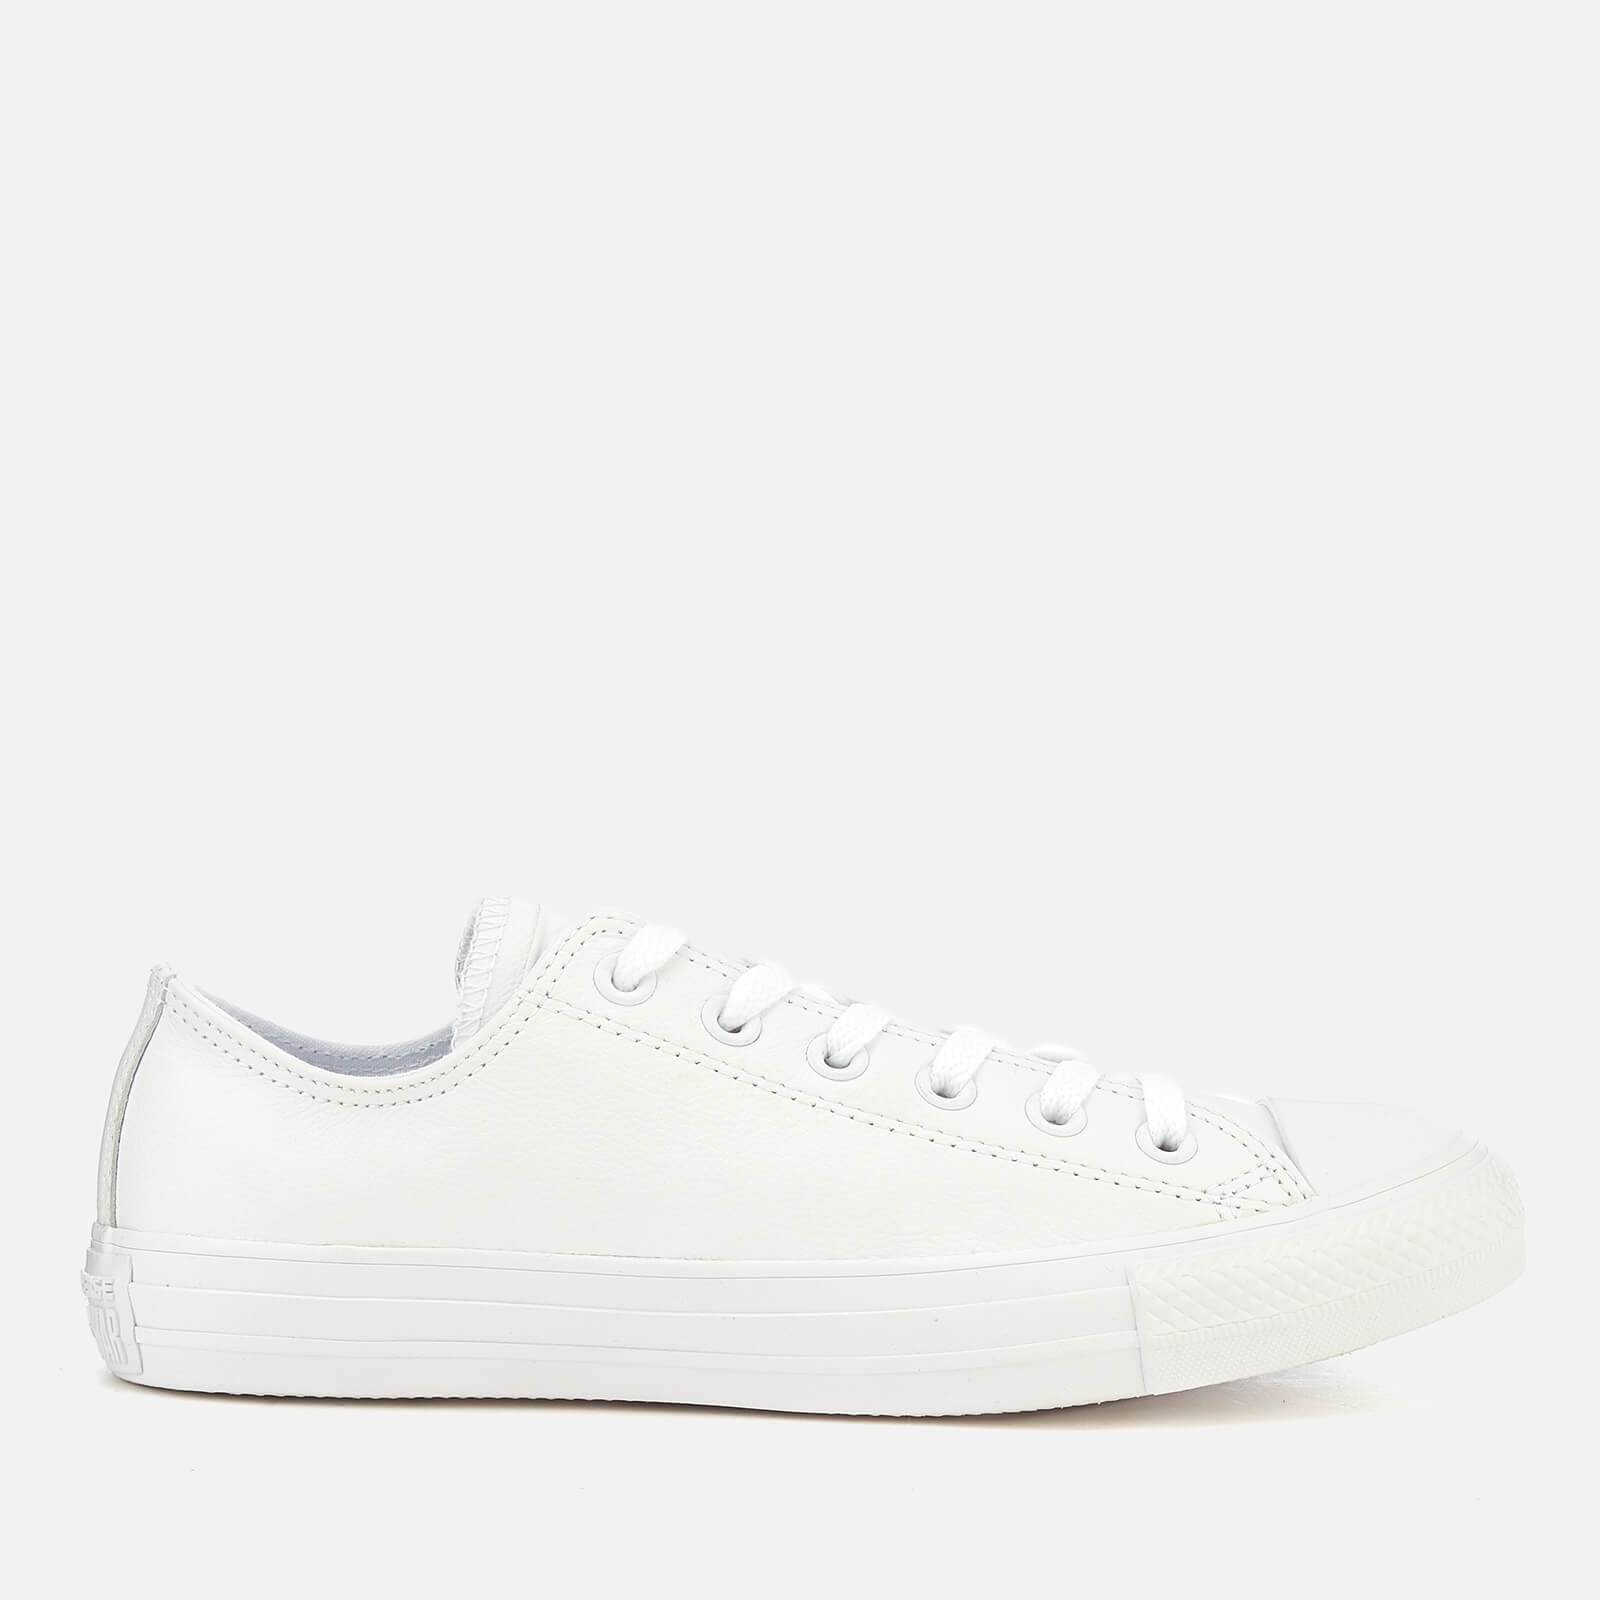 Converse Chuck Taylor All Star Ox Trainers - White - UK 7